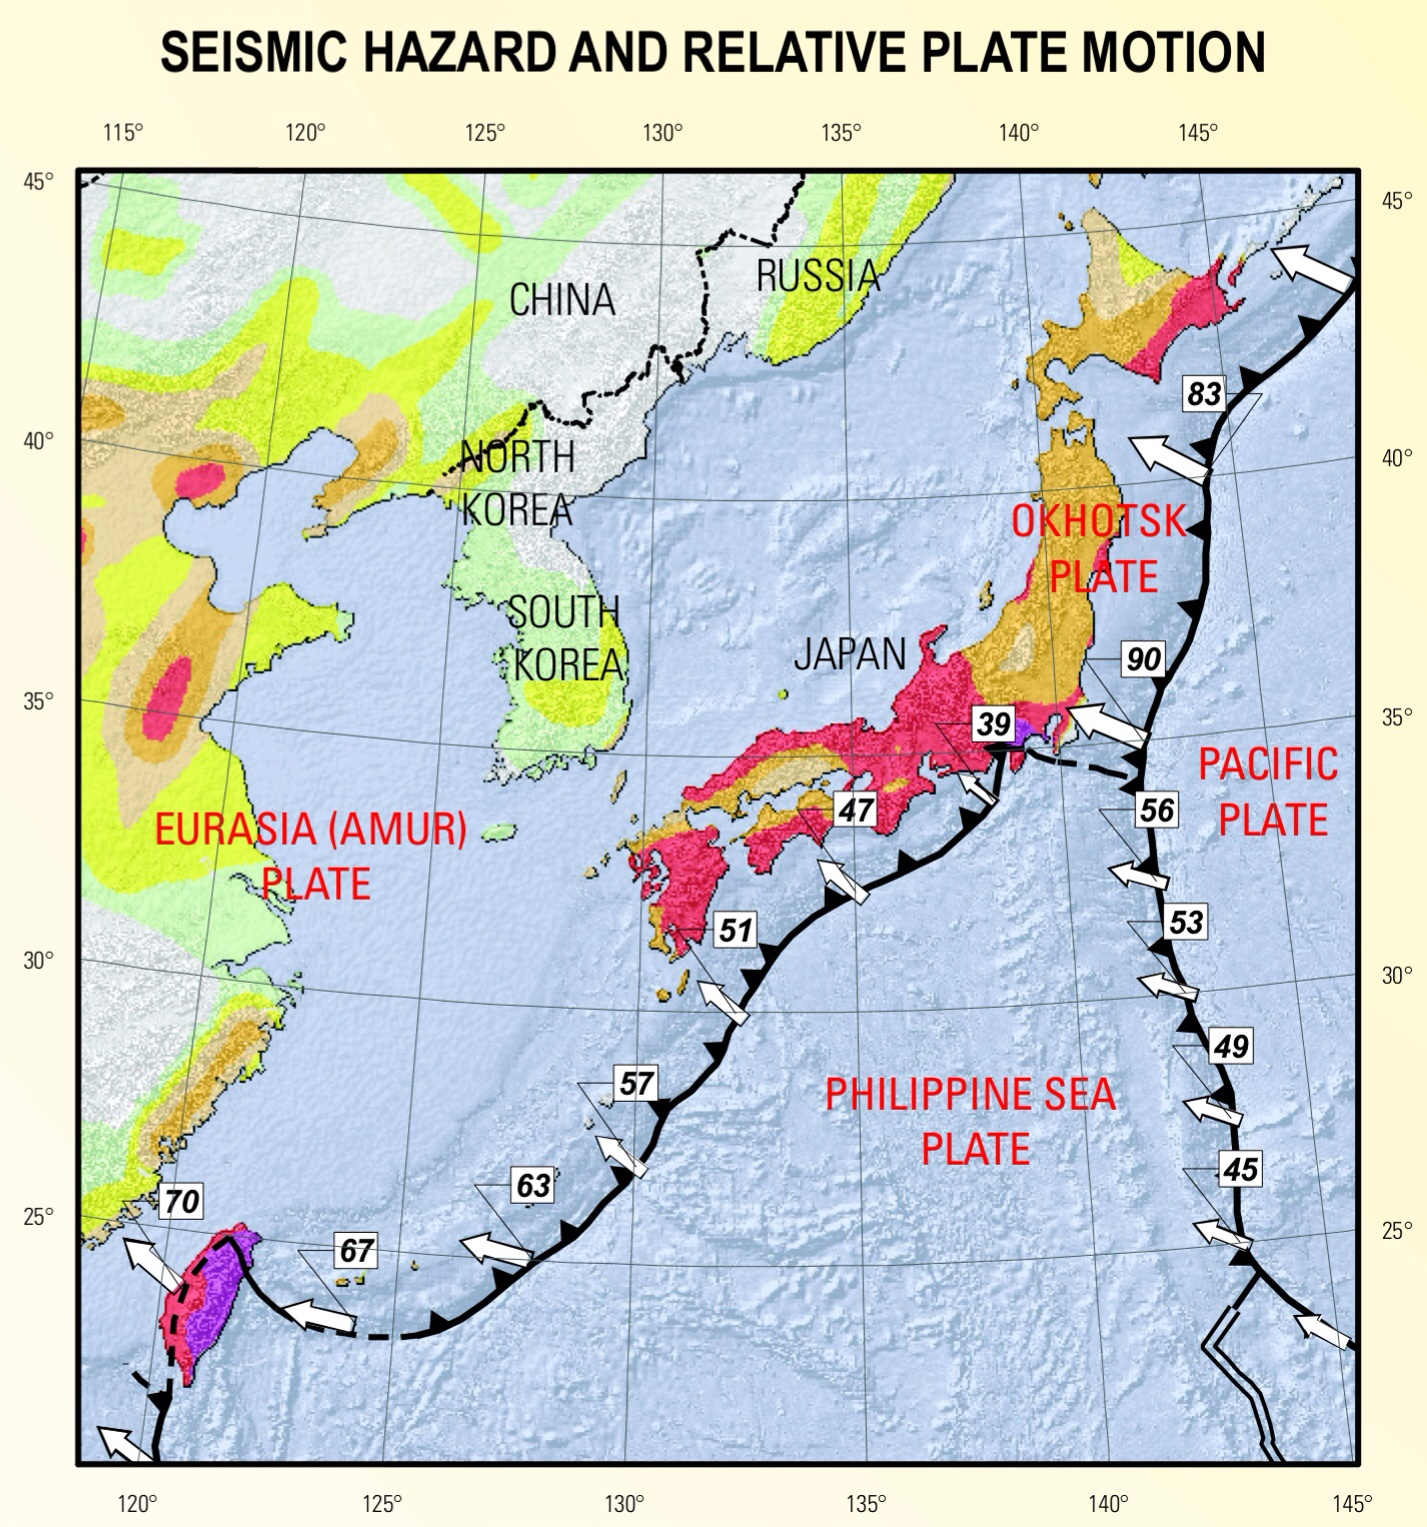 Why the recent japan earthquakes japan trench no place for nuclear japan plates usgs rhea et al 2010 gumiabroncs Images